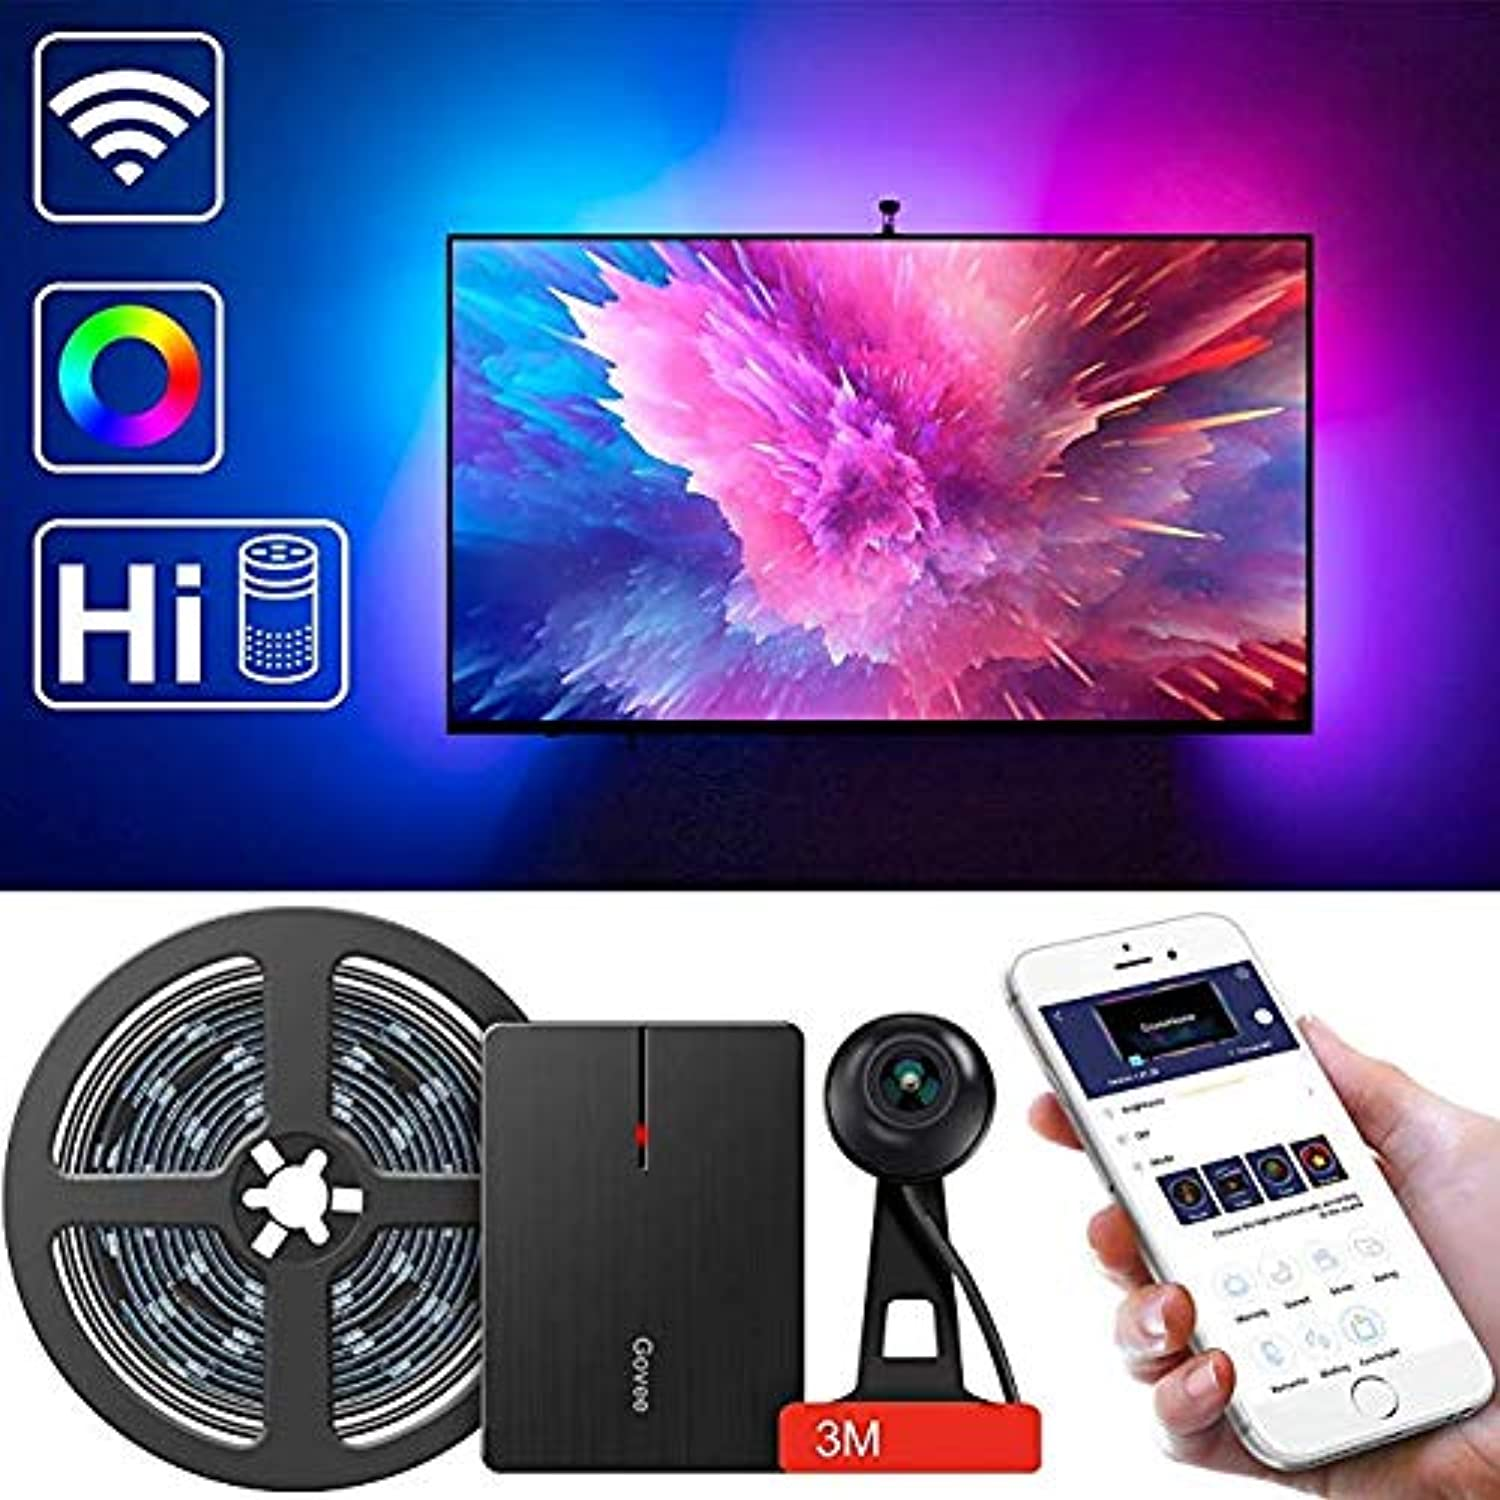 LED TV Backlights, Govee WiFi TV Backlights Kit with Camera, TV Led Strip Lights Compatible with Alexa, APP Control Music Led Strip Lights, TV Ambient Bias Lighting for 55 -80  TV Calibrate on APP